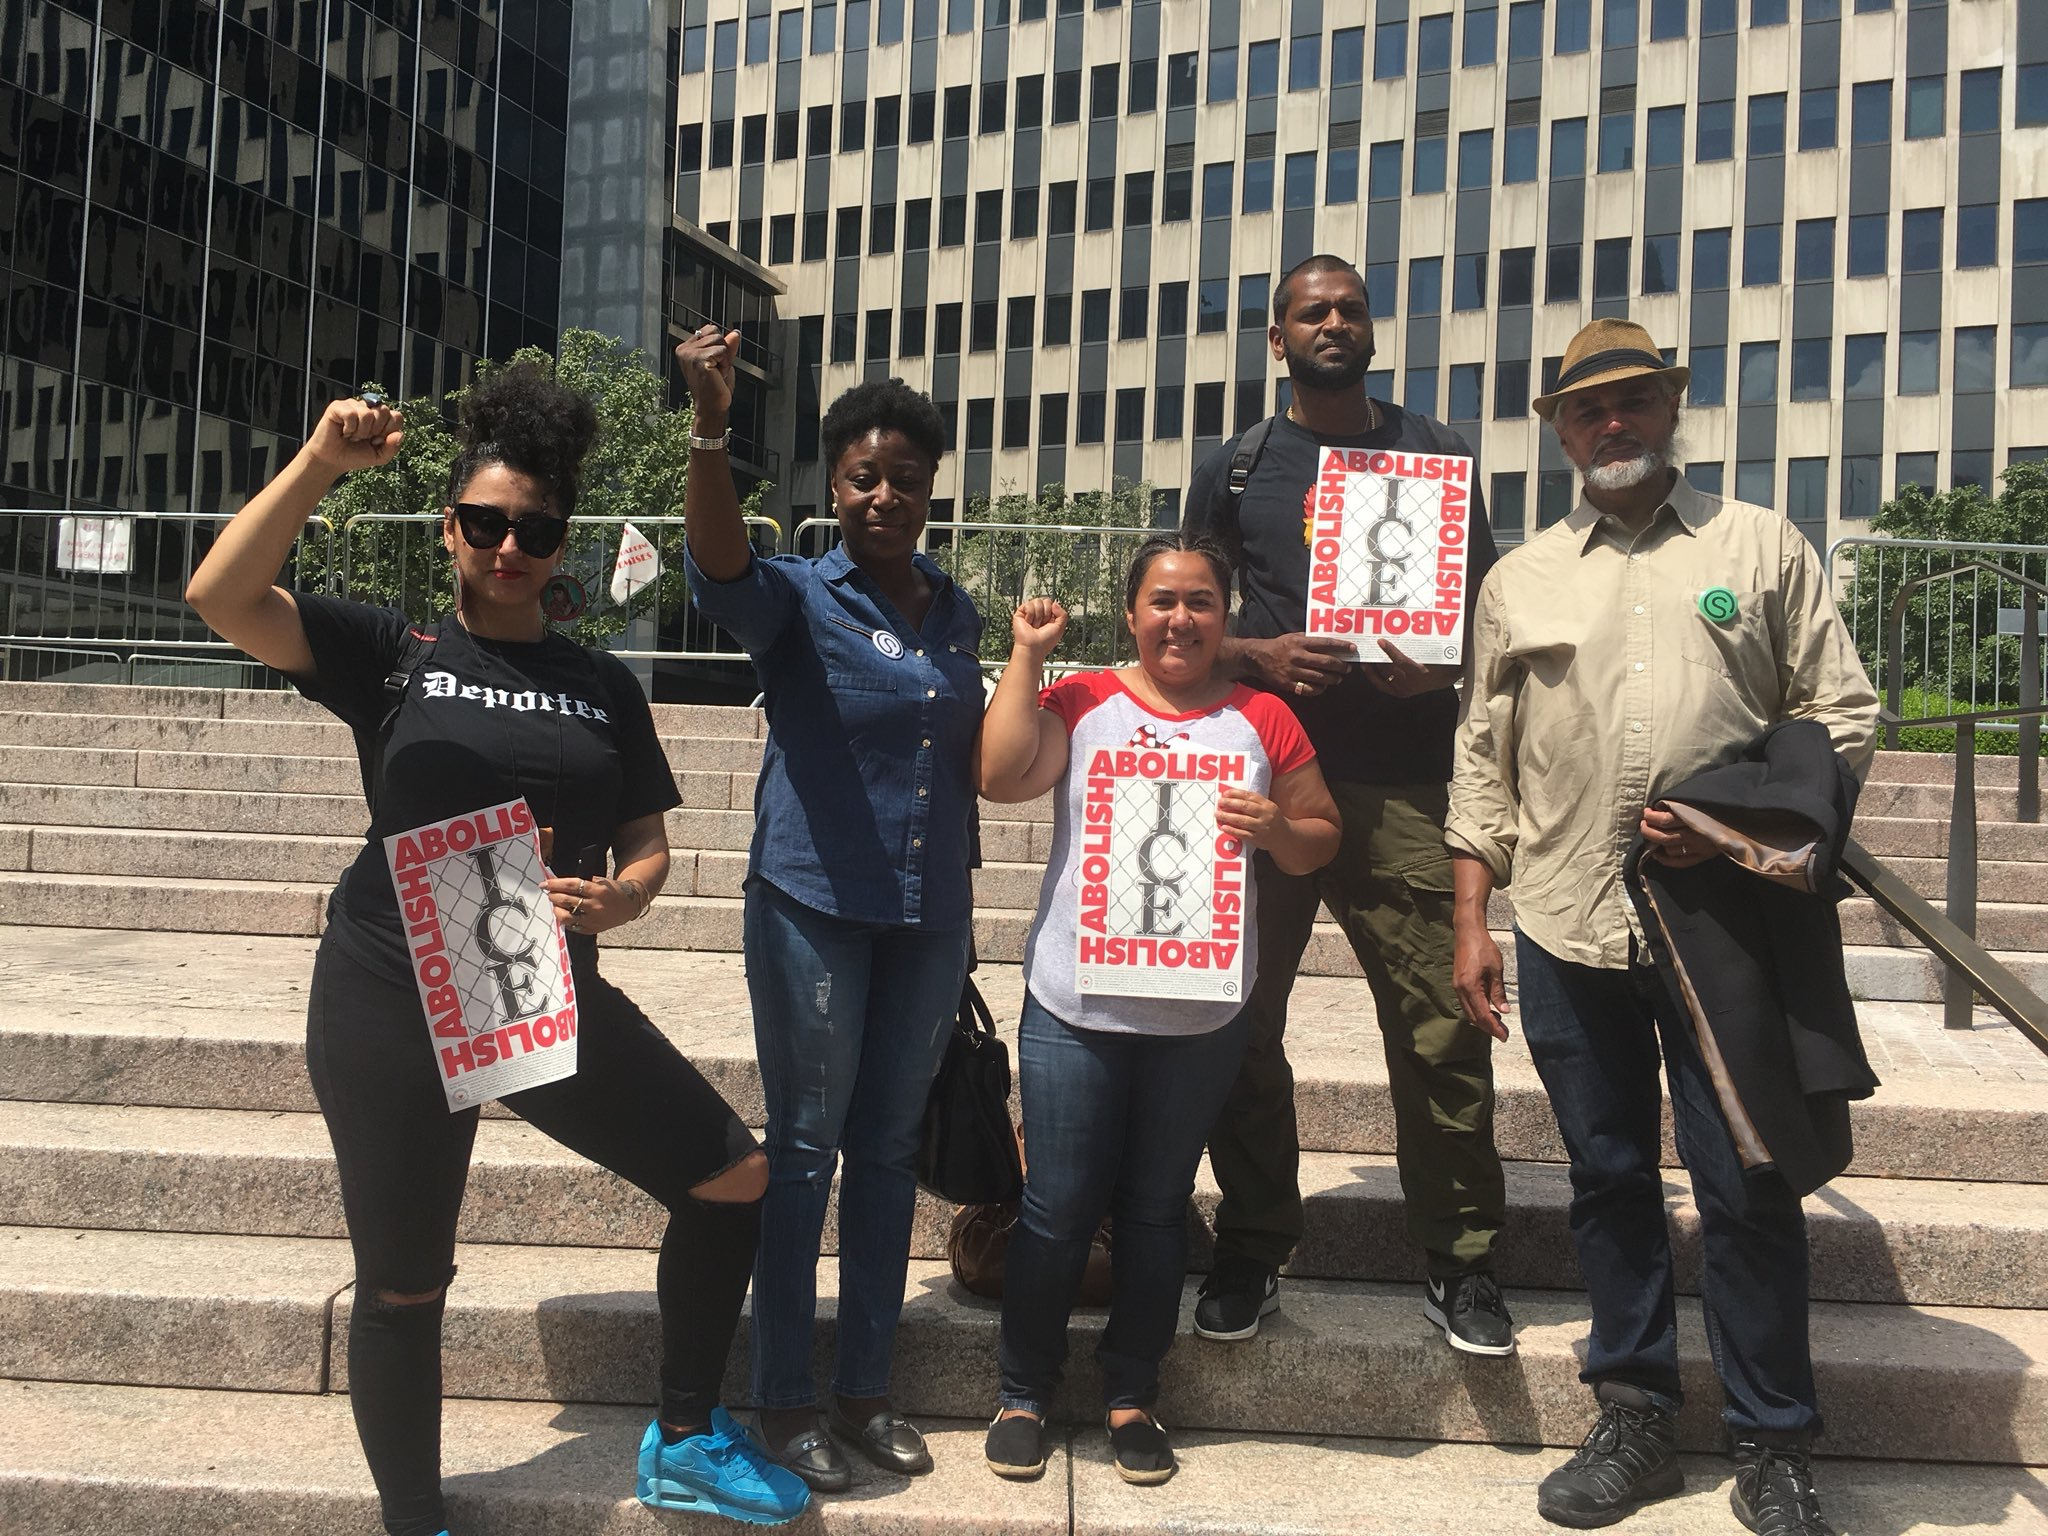 In solidarity with Ravi Ragbir and community members in NY. Ale is part of a 1st amendment lawsuit against the targeting of immigrant rights activists.